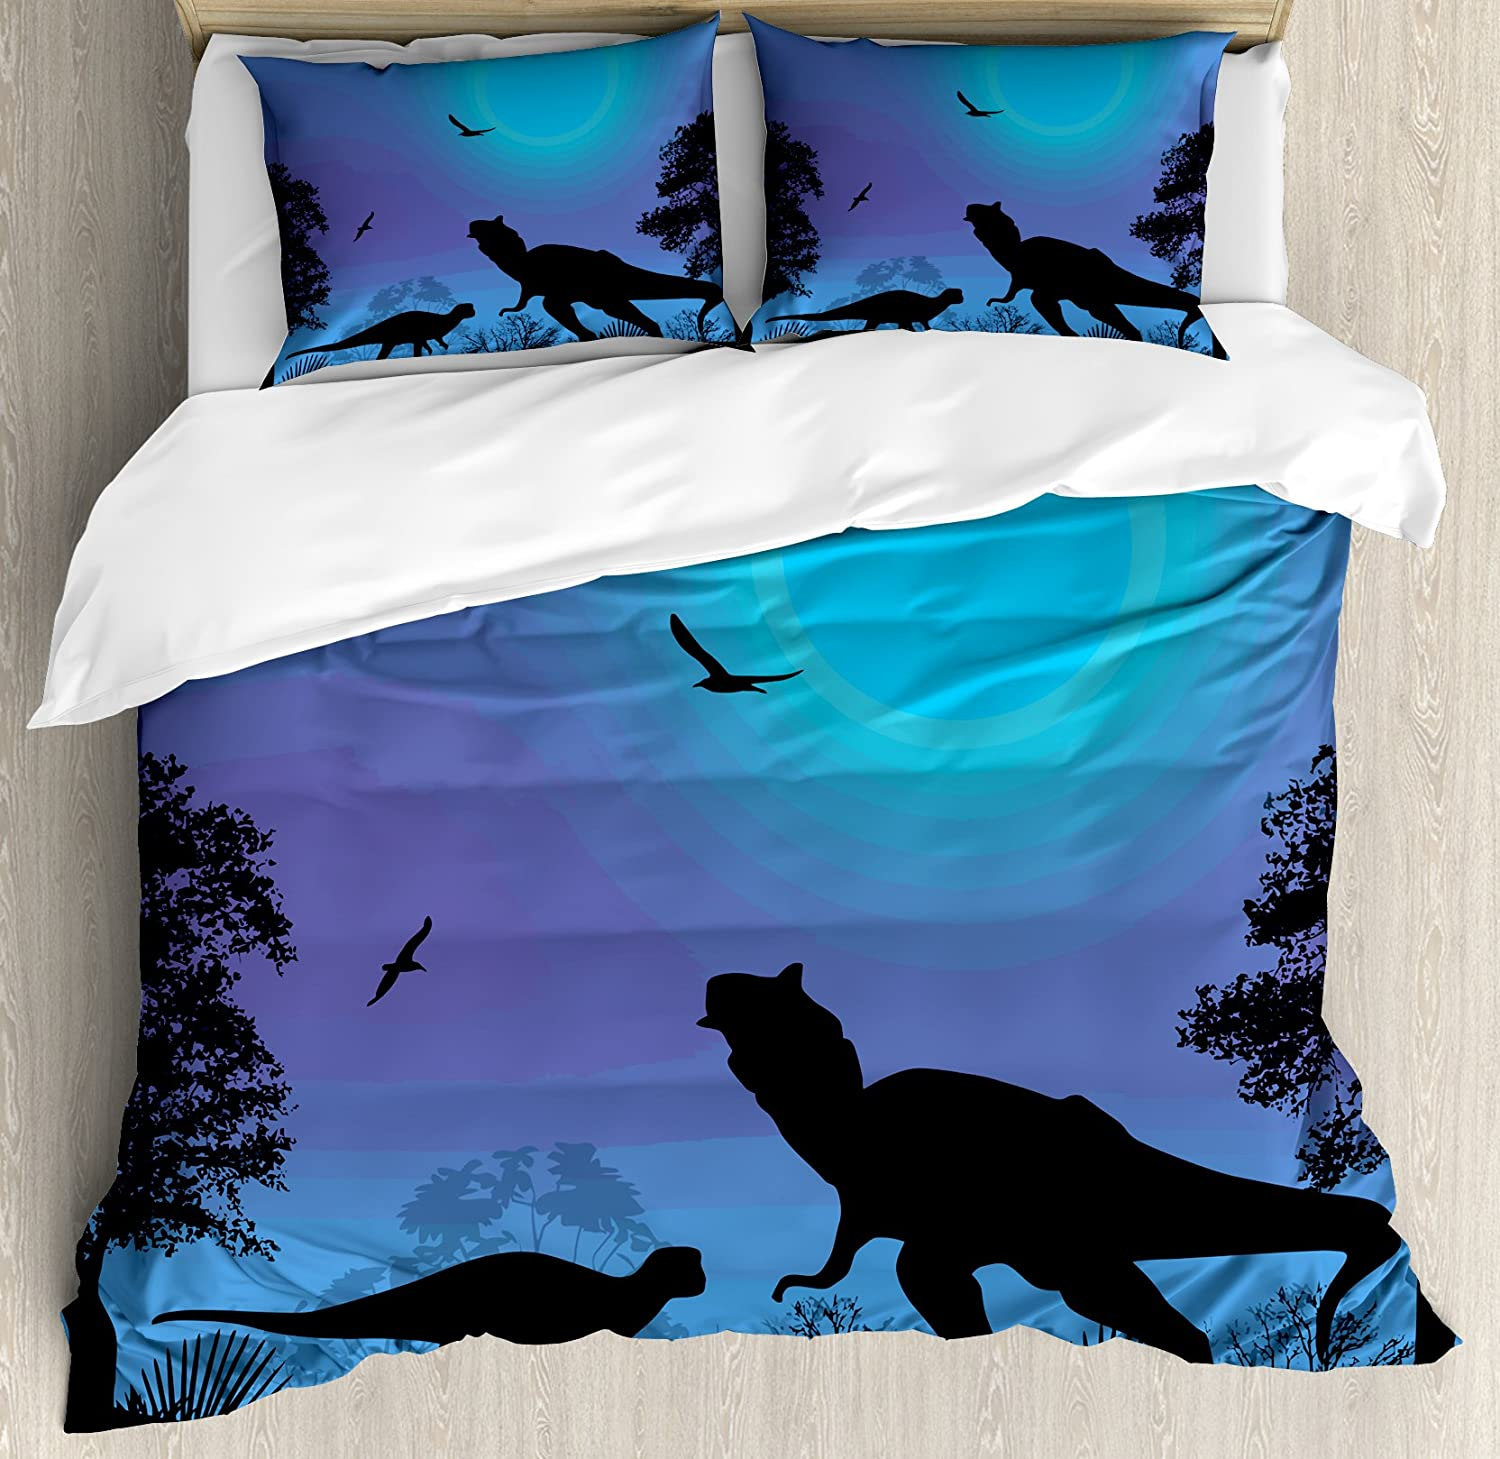 Lunarable Dinosaur Duvet Cover Set, Roaming Dinosaurs at Night with Deep Blue Sky Prehistoric Rural Landscape, Decorative 3 Piece Bedding Set with 2 Pillow Shams, Queen Size, Black Lilac